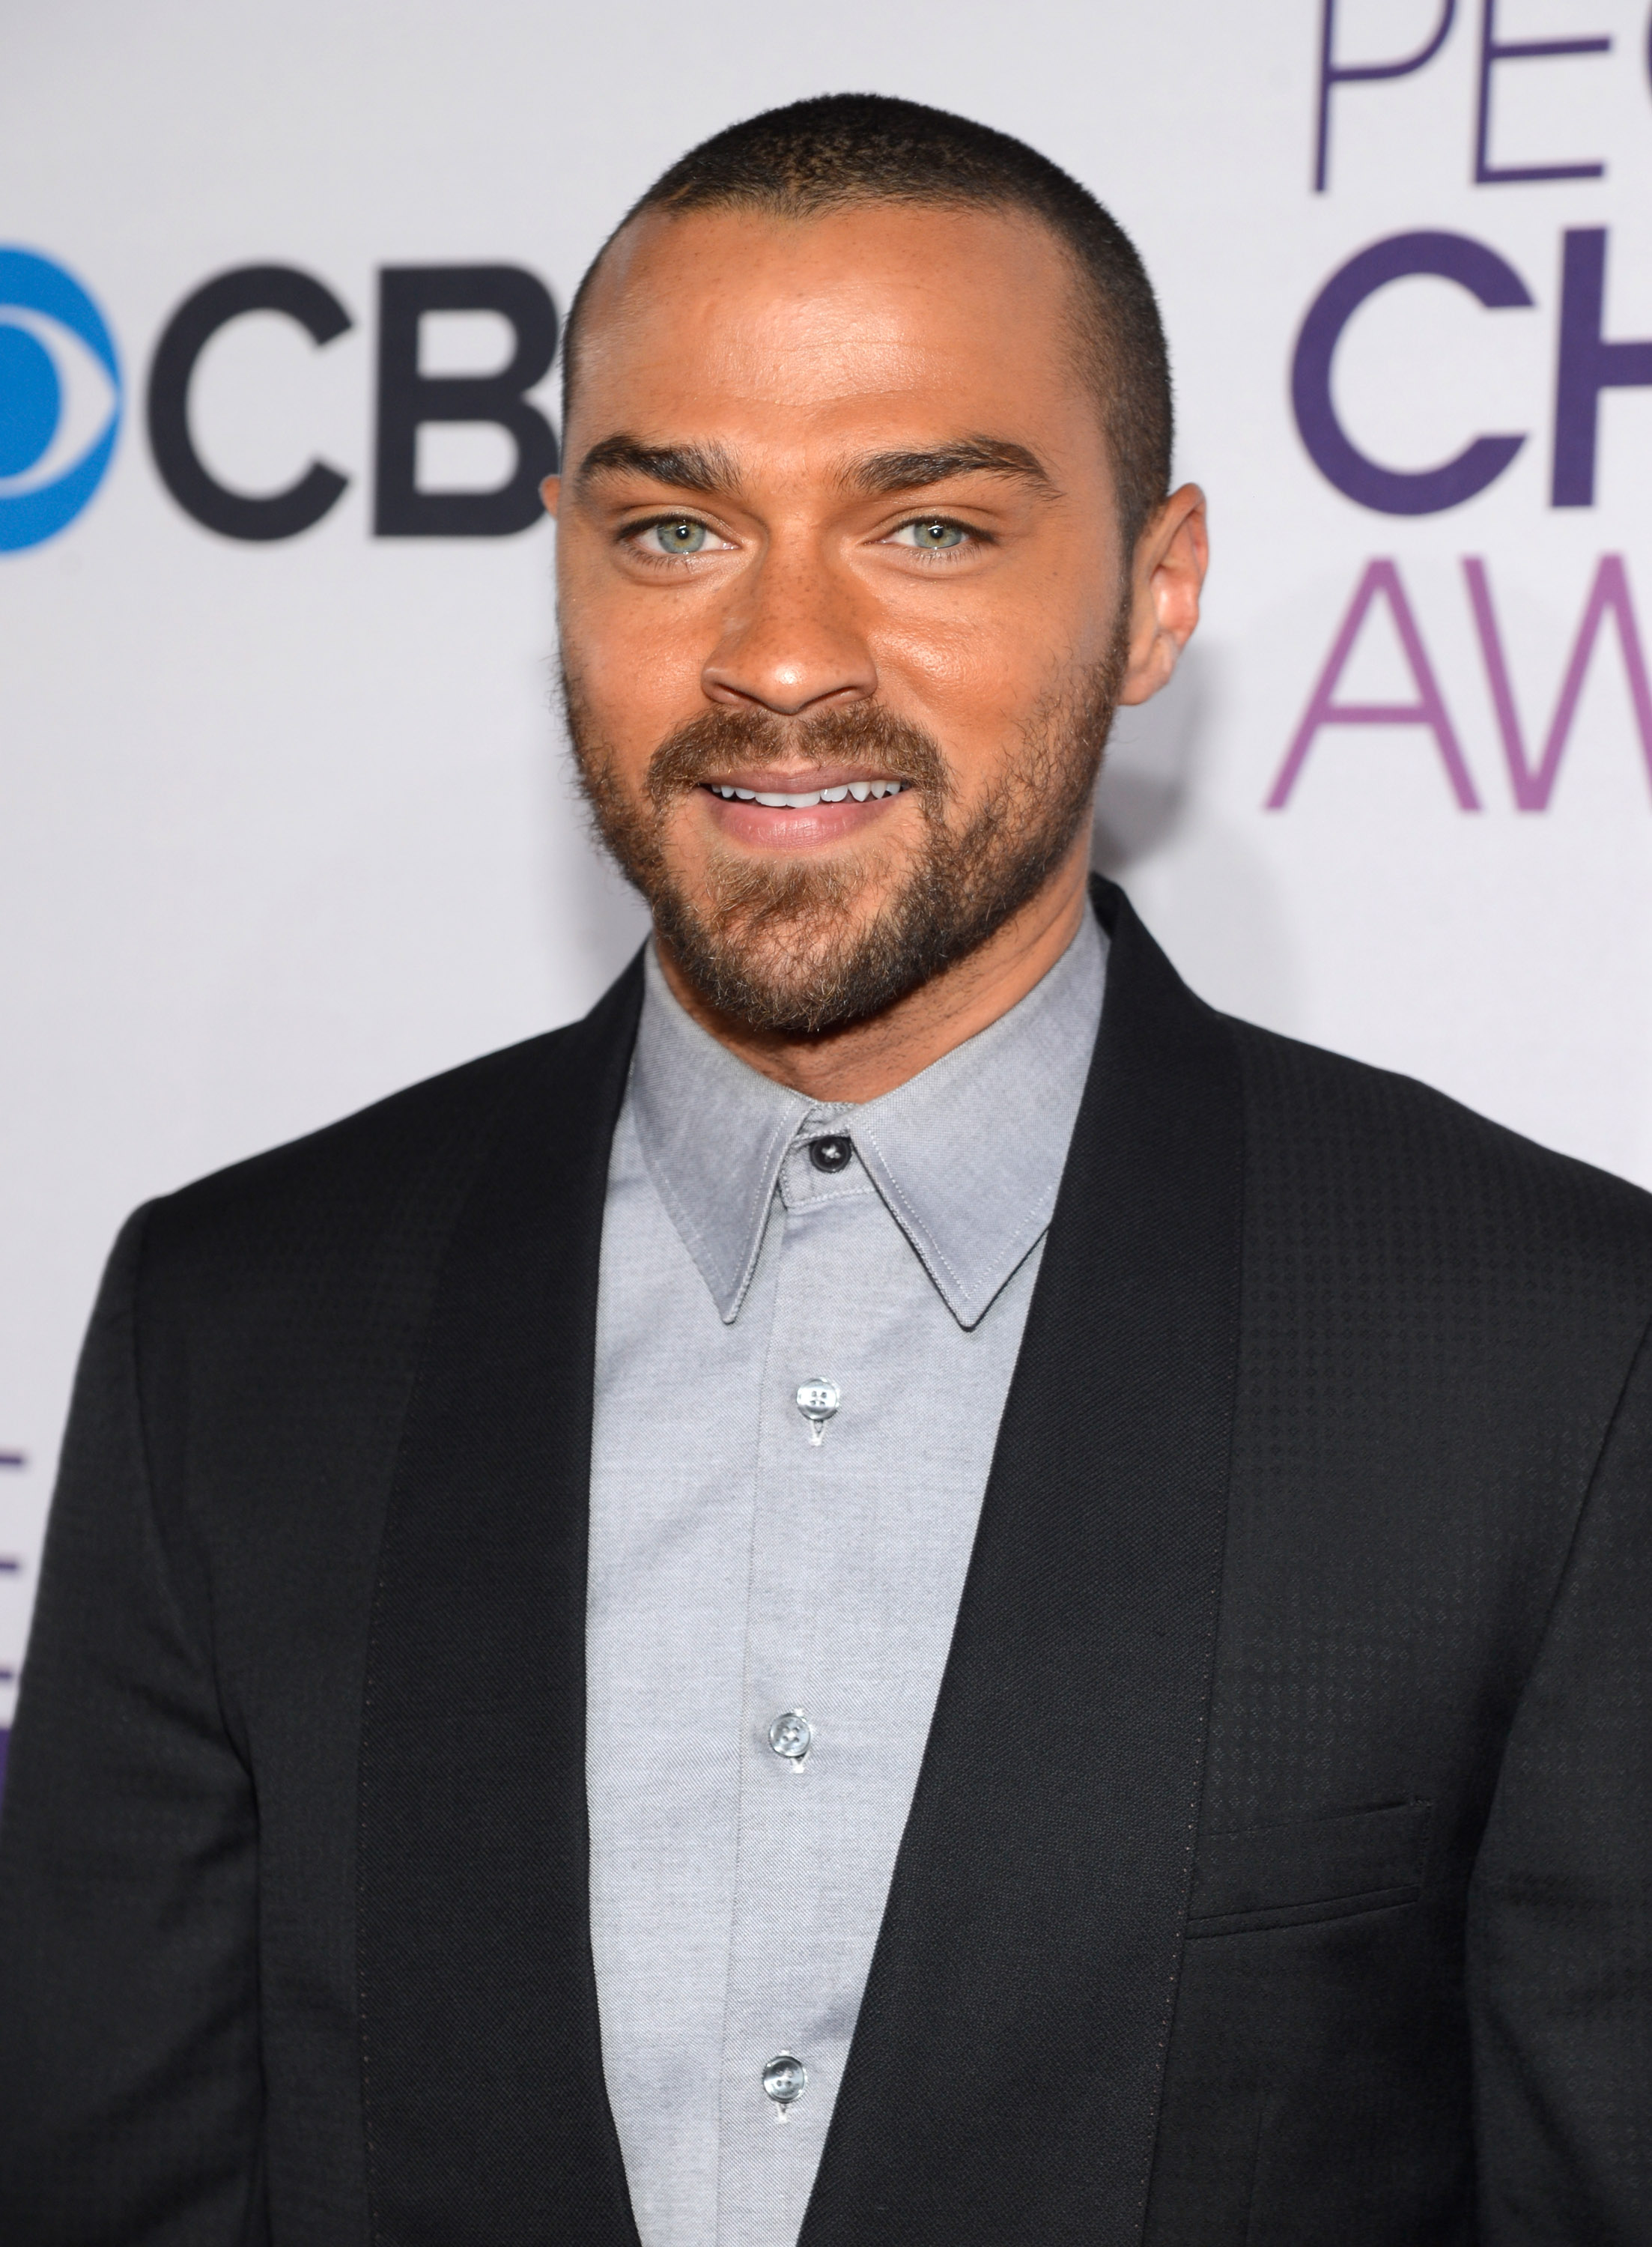 Jesse williams people 39 s choice awards ablaze with babes for People s choice 65